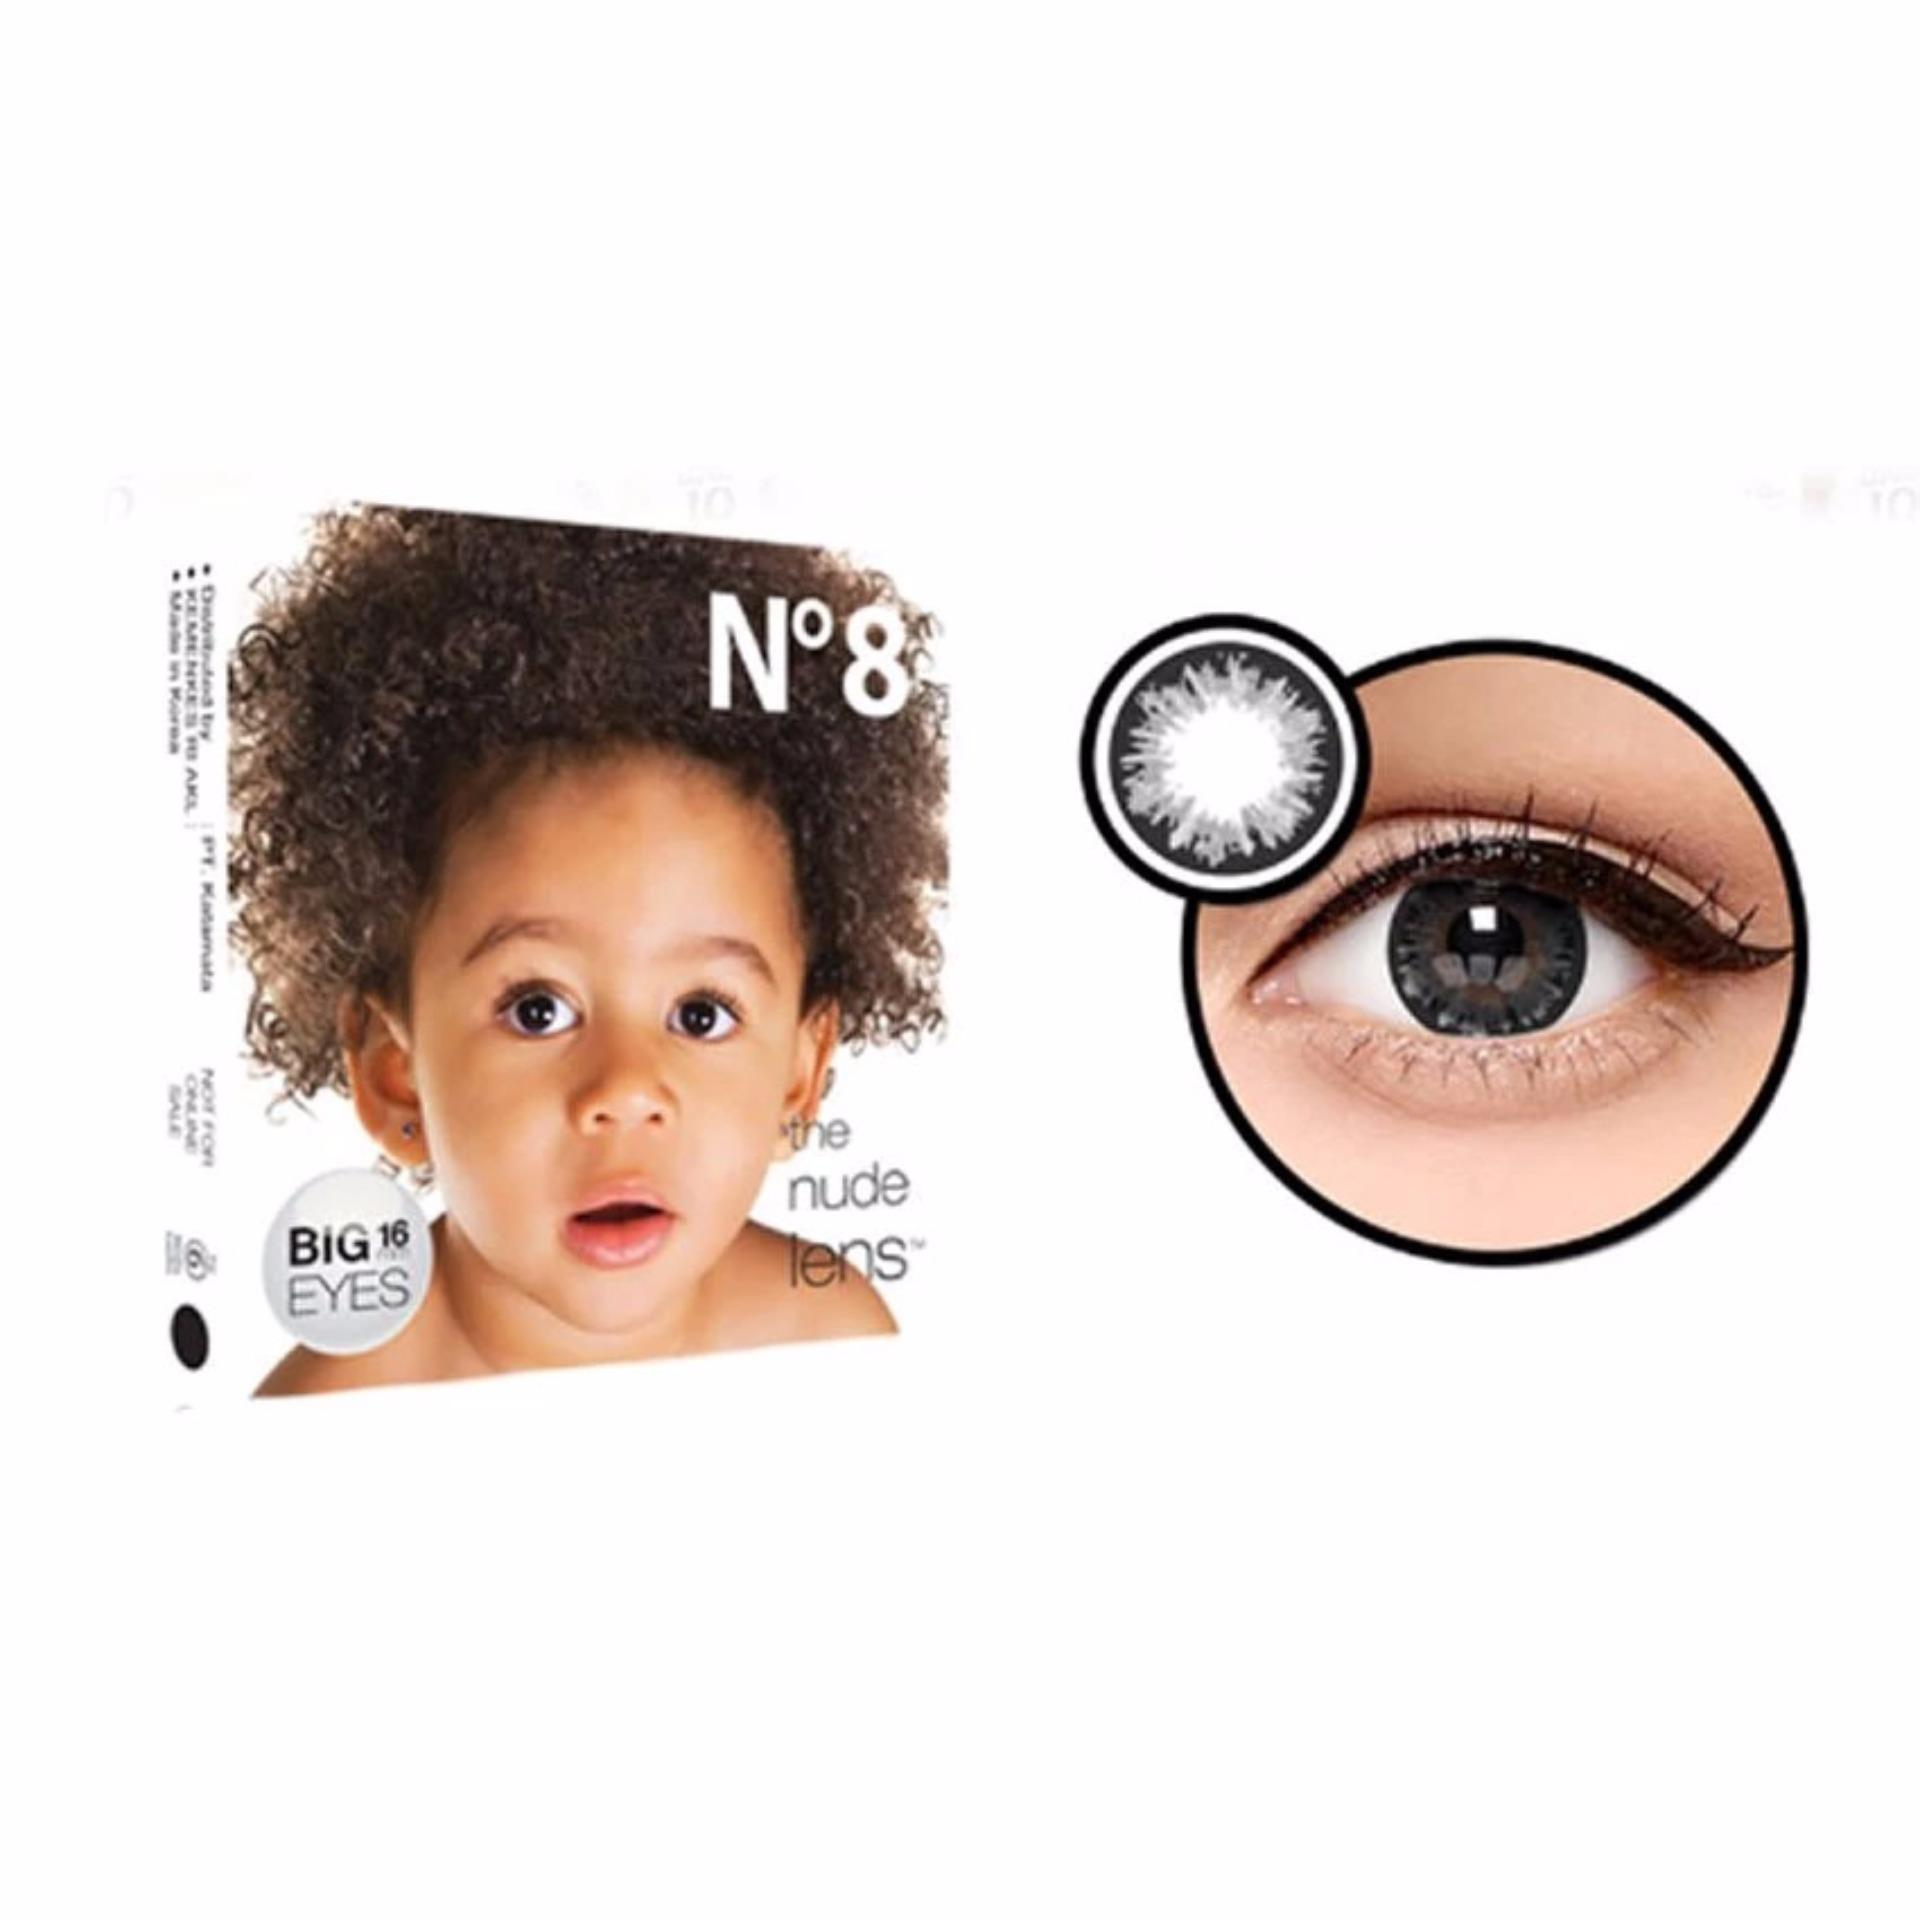 Beli Exoticon Softlens Ice No 8 Black By X2 Minus 2 5 Baru